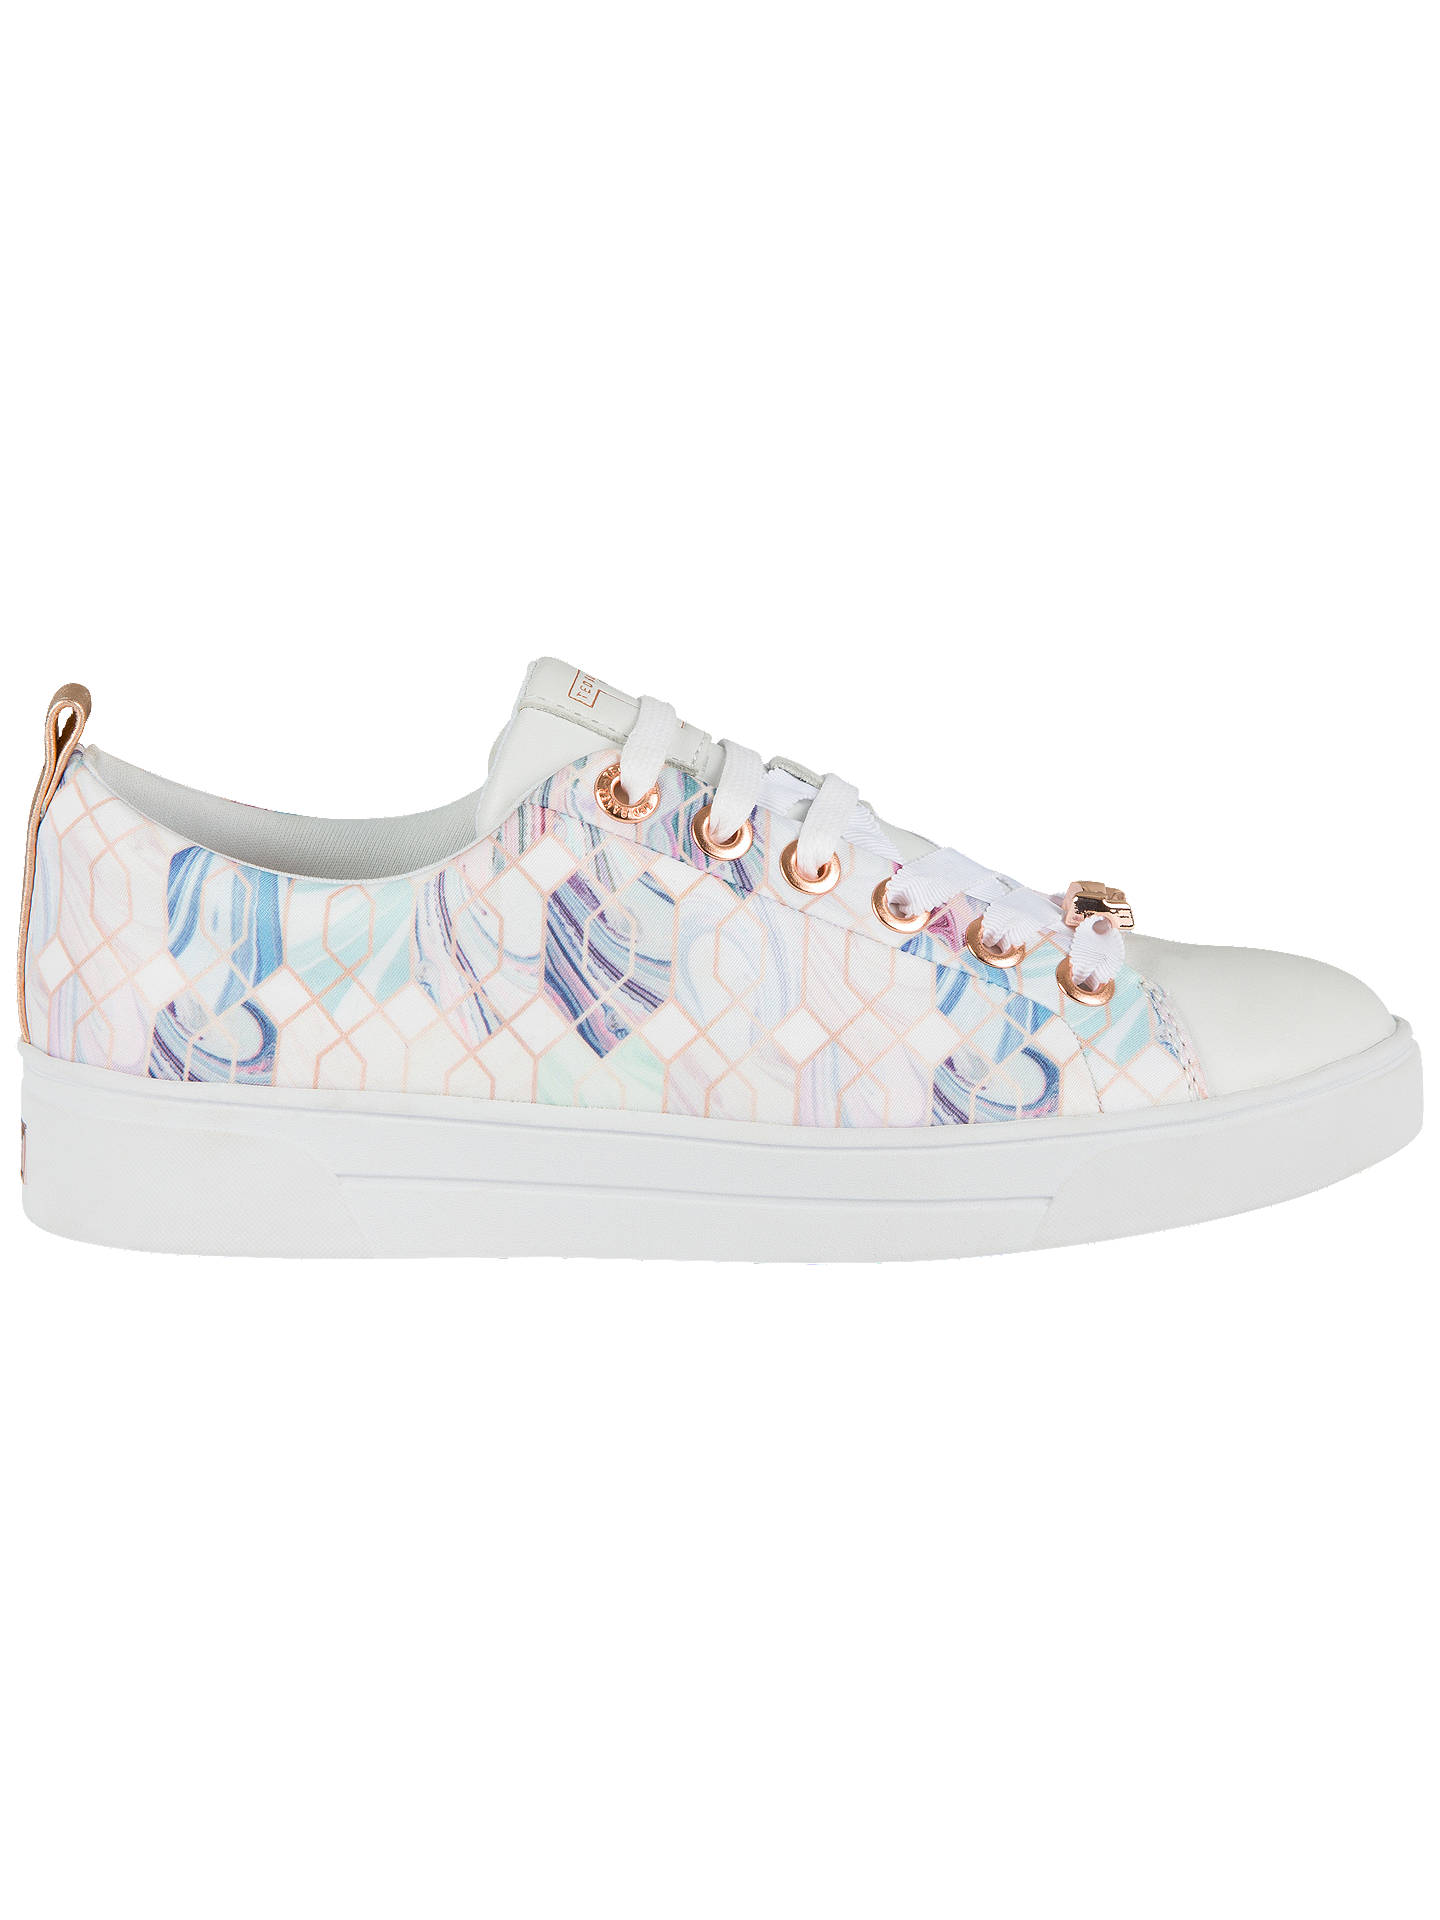 508cf790a Buy Ted Baker Ahfira Highgrove Printed Trainers